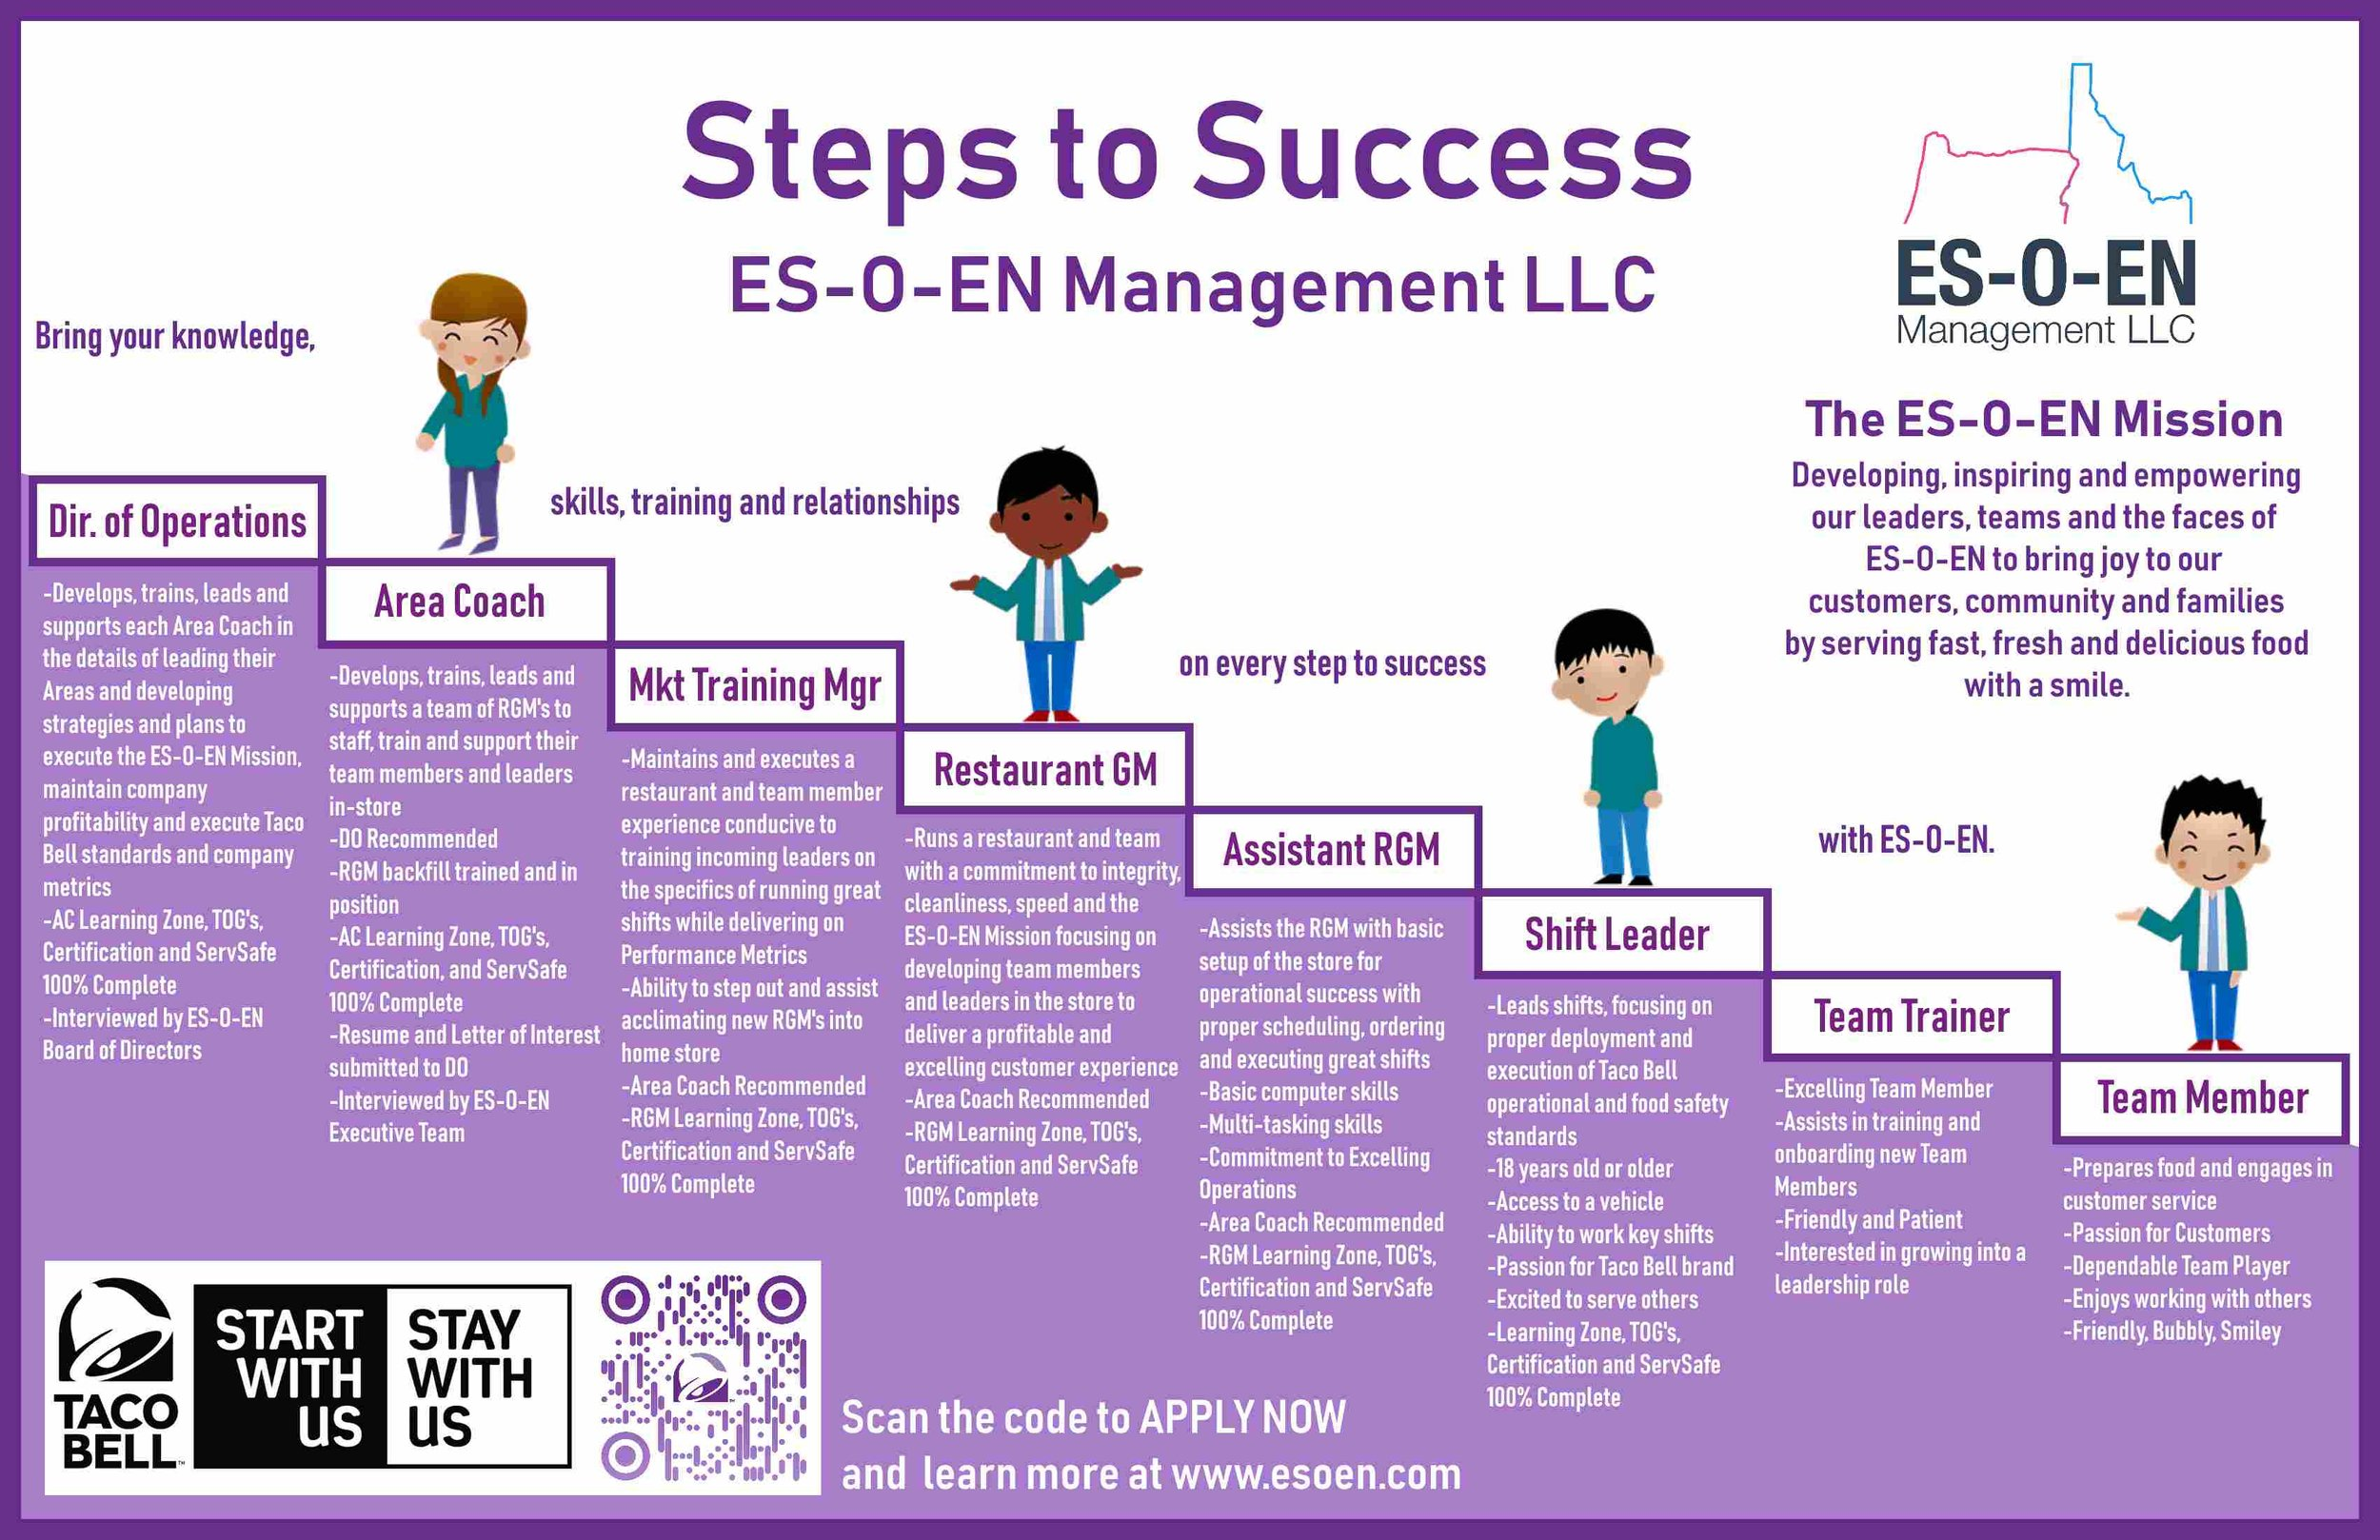 No matter where you start with our team, we want to help you climb the ES-O-EN Steps to Success as high as your drive takes you!